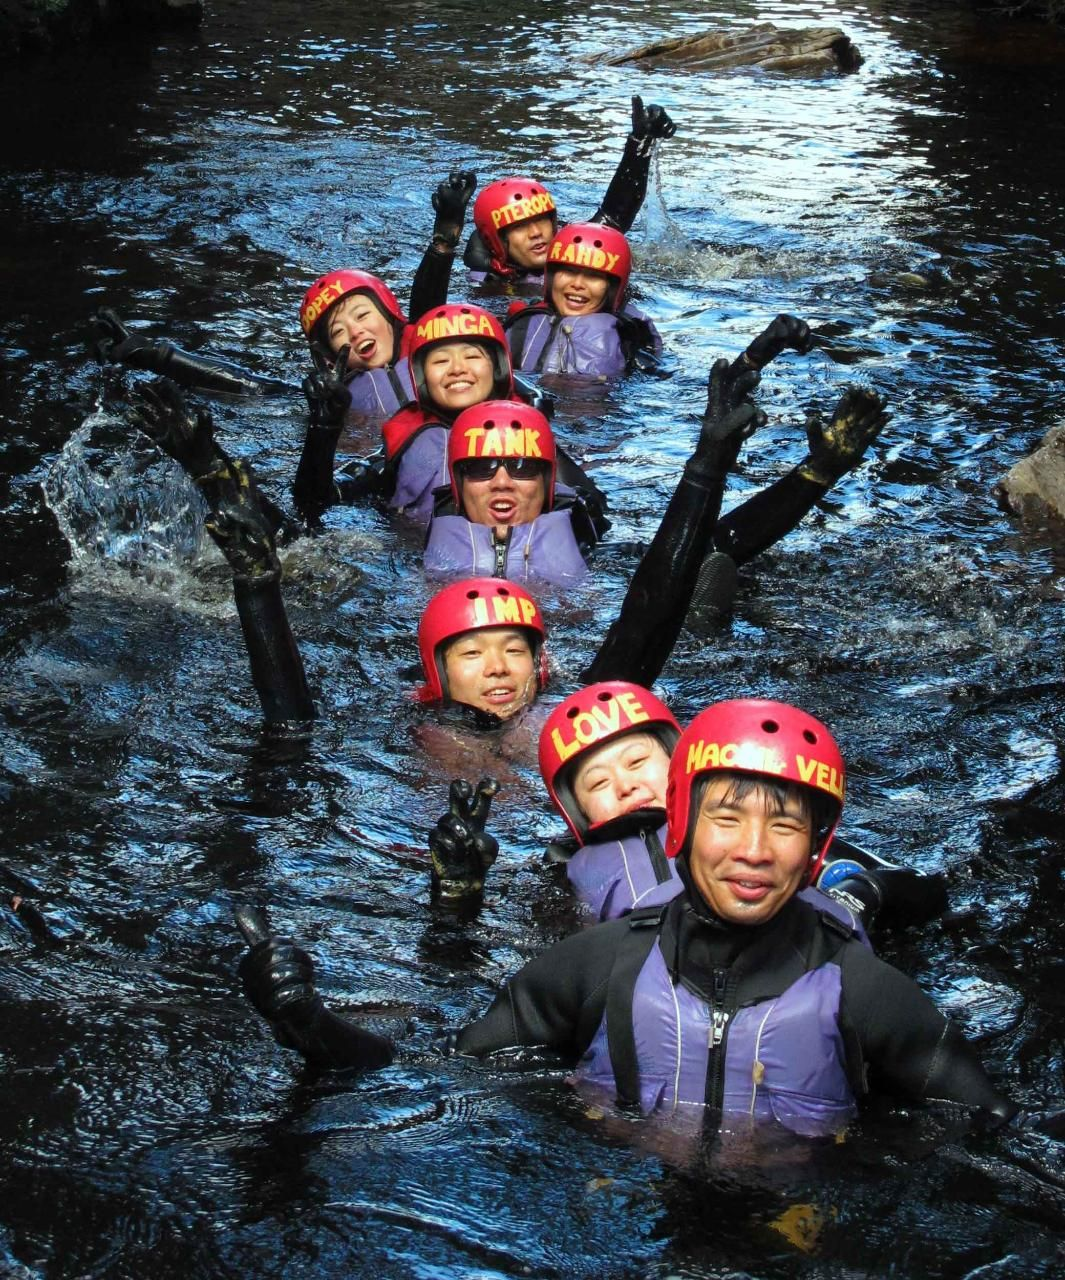 Lost World Family Canyoning - with Kids Cradle Mountain TAS, Australia